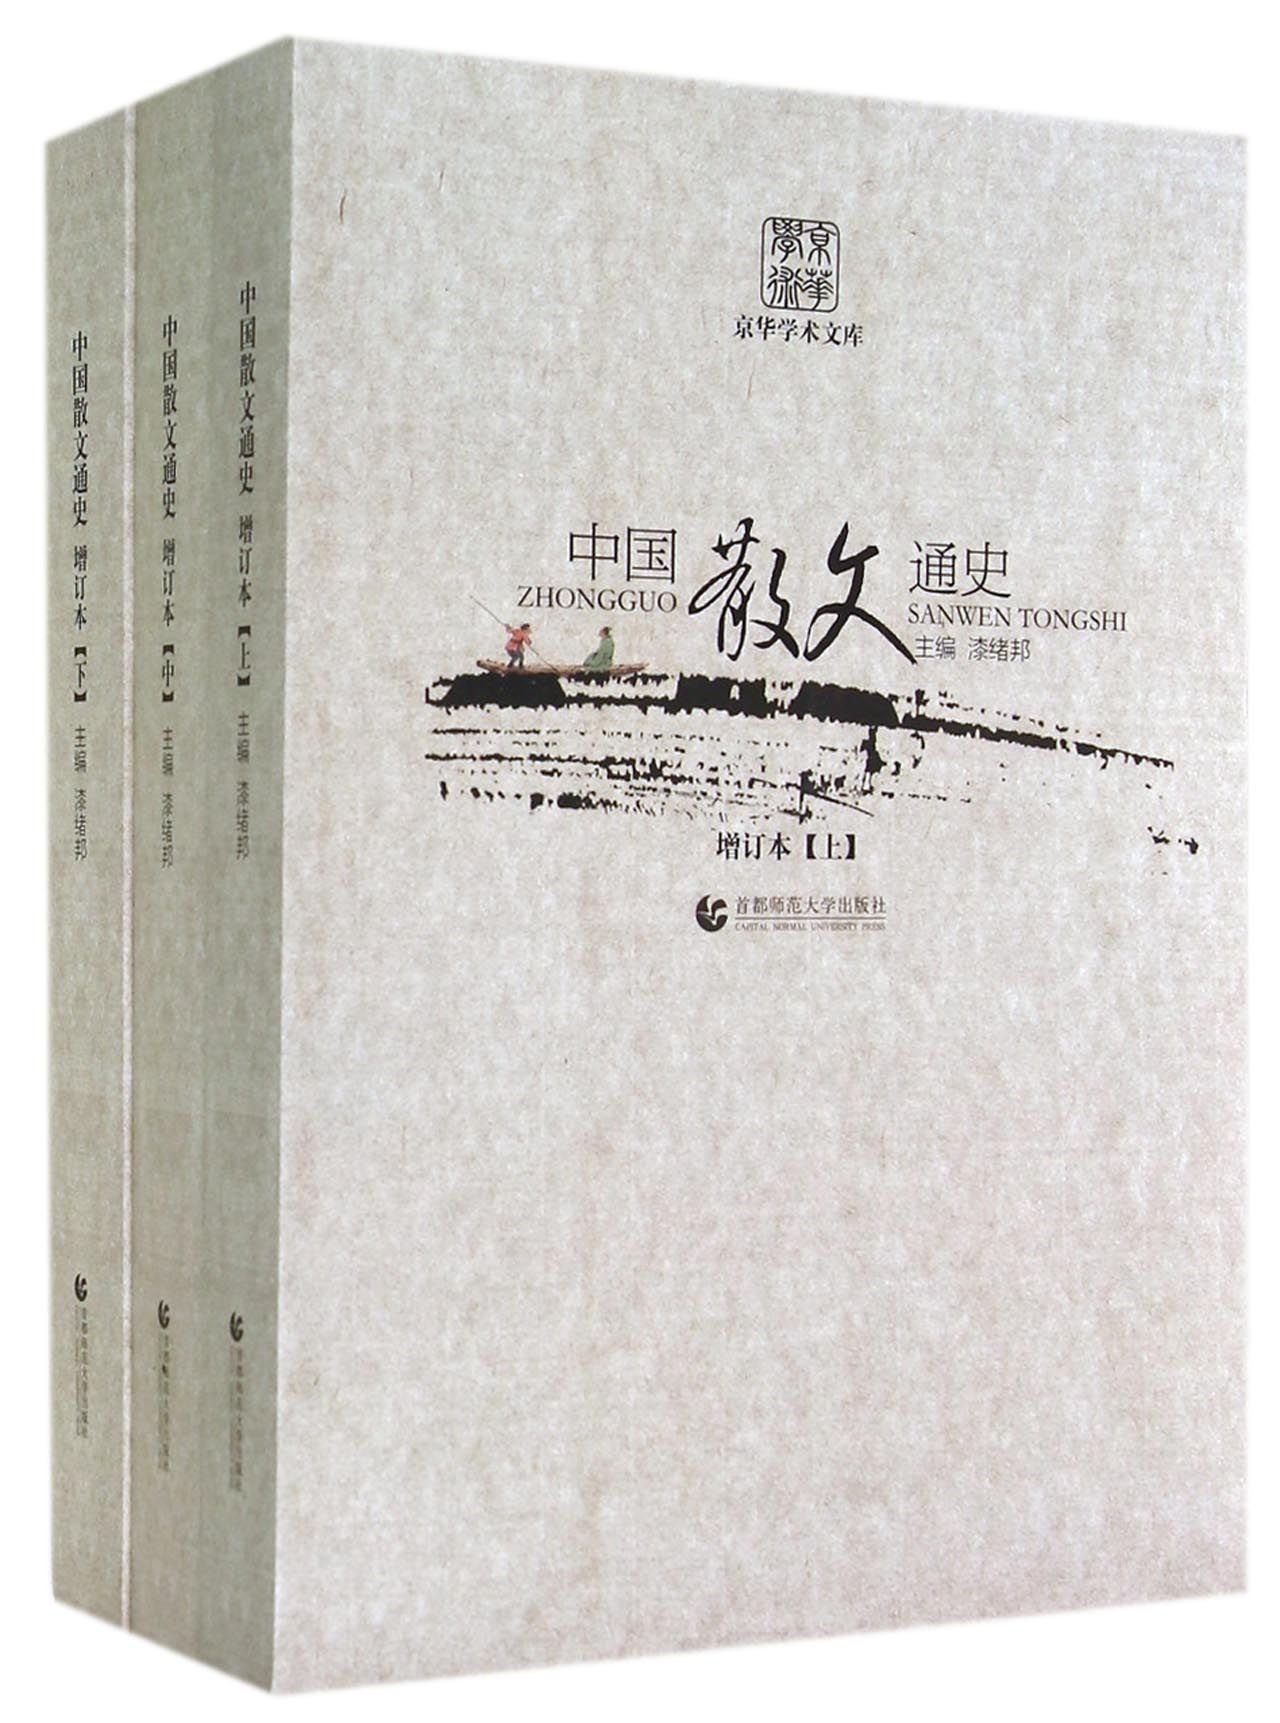 The General History of Chinese Prose (Revised and Enlarged Edition - I, II & III) (JINGHUA Academic Library) ebook